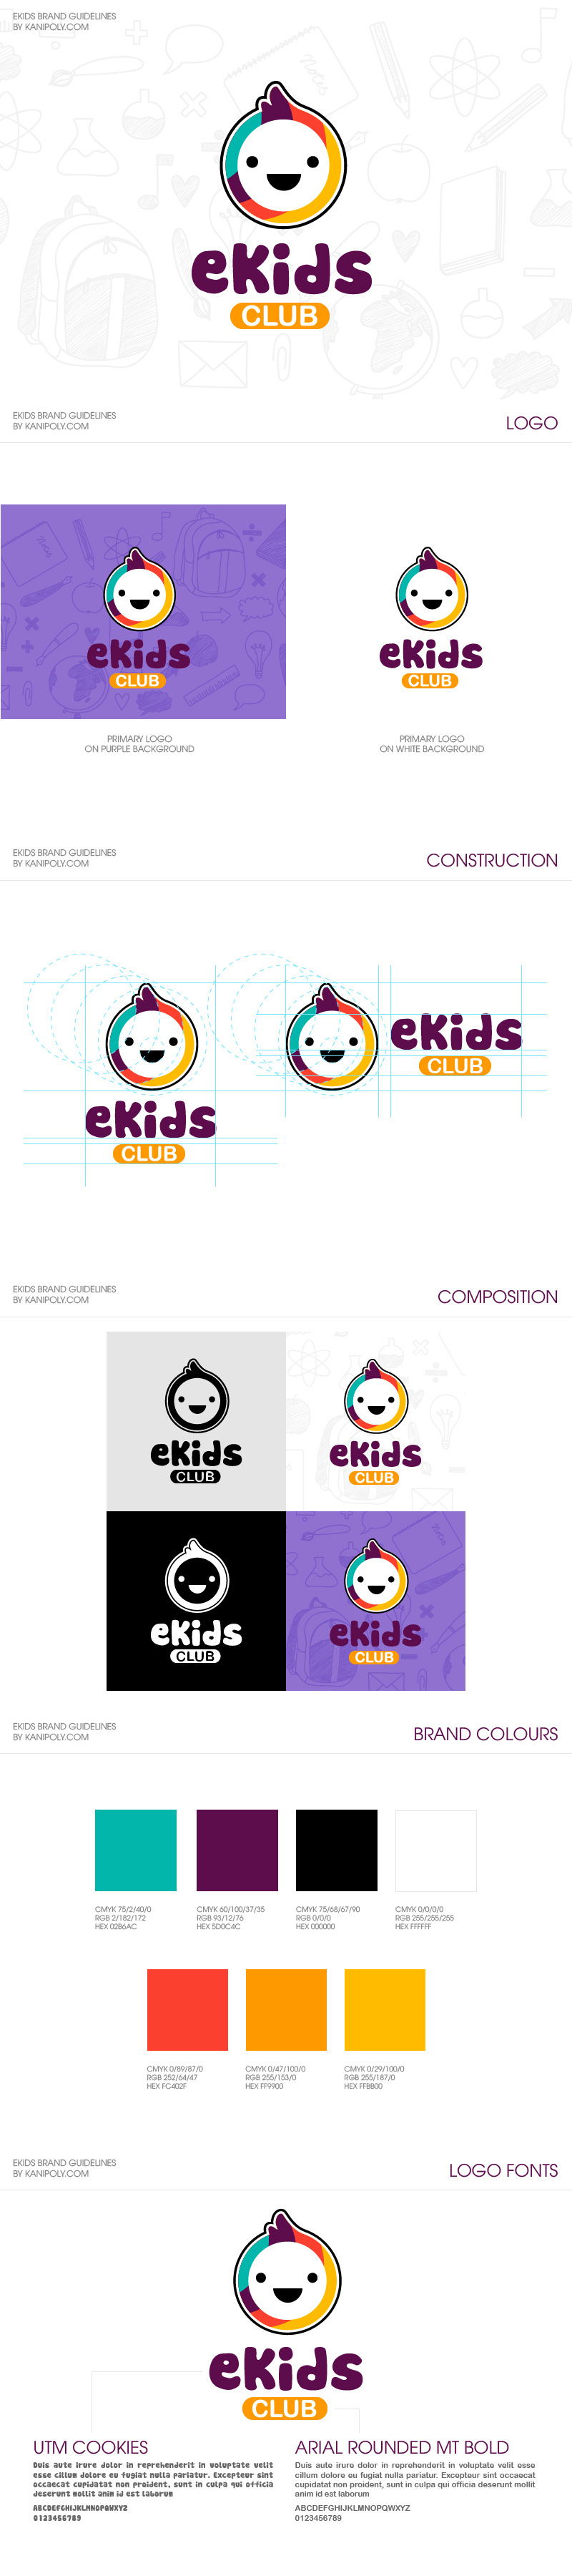 ekids club brand guideline